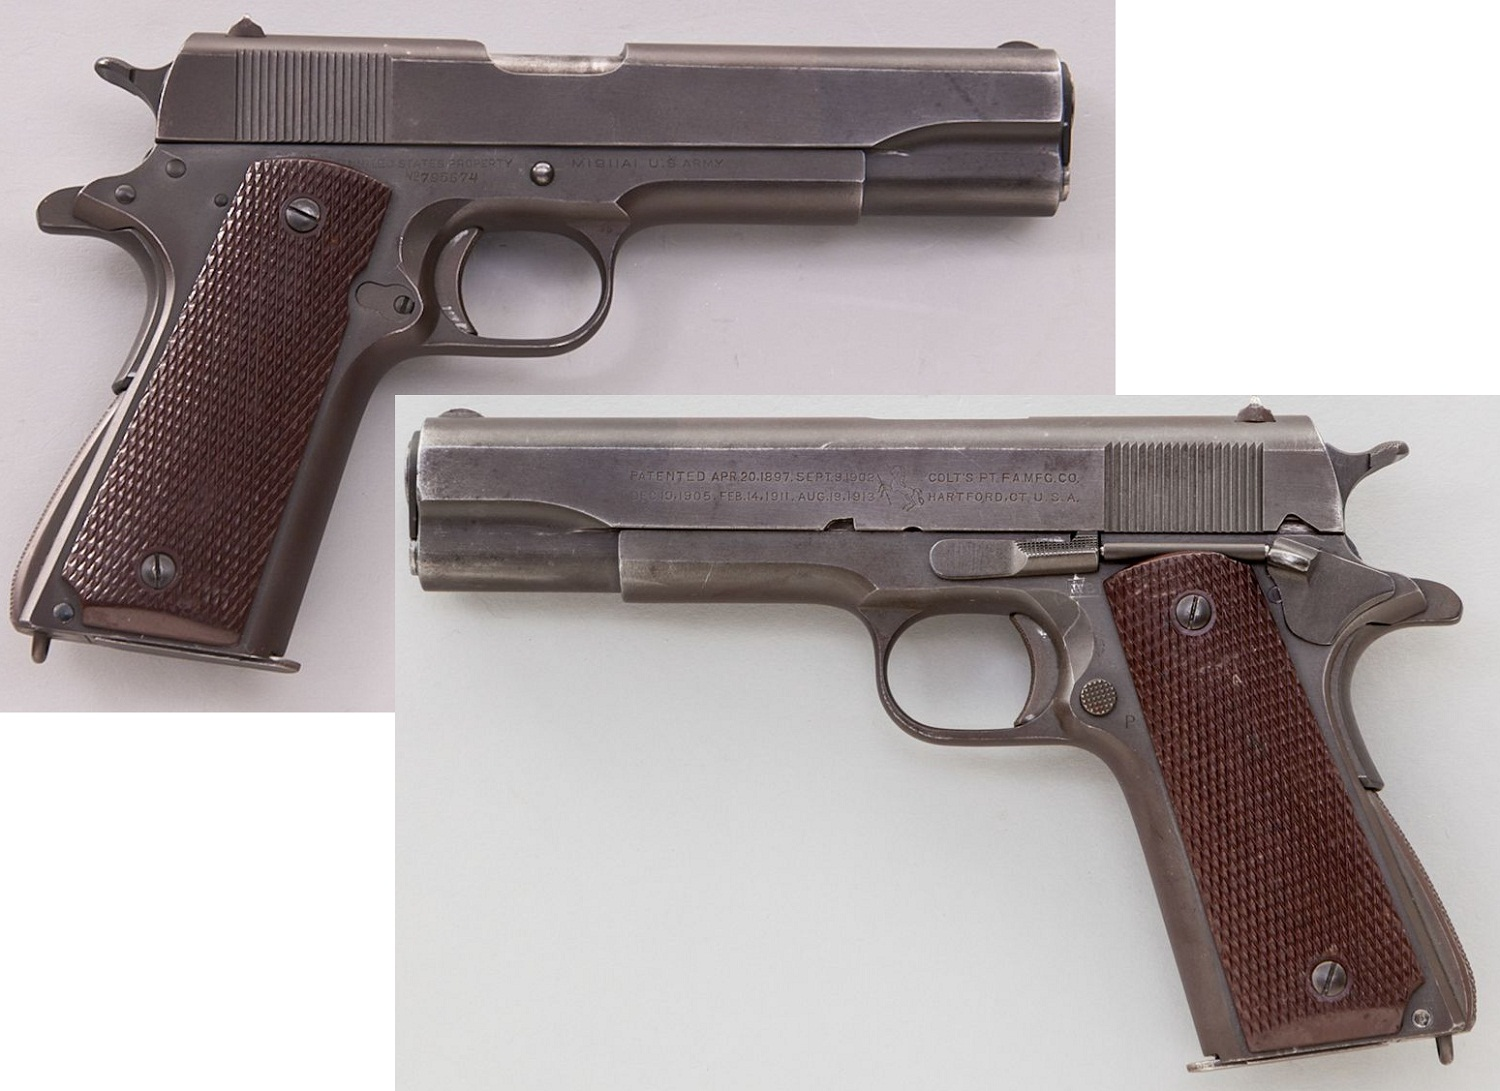 US Navy Colt Model 1911-A1 Semi-Automatic Pistol